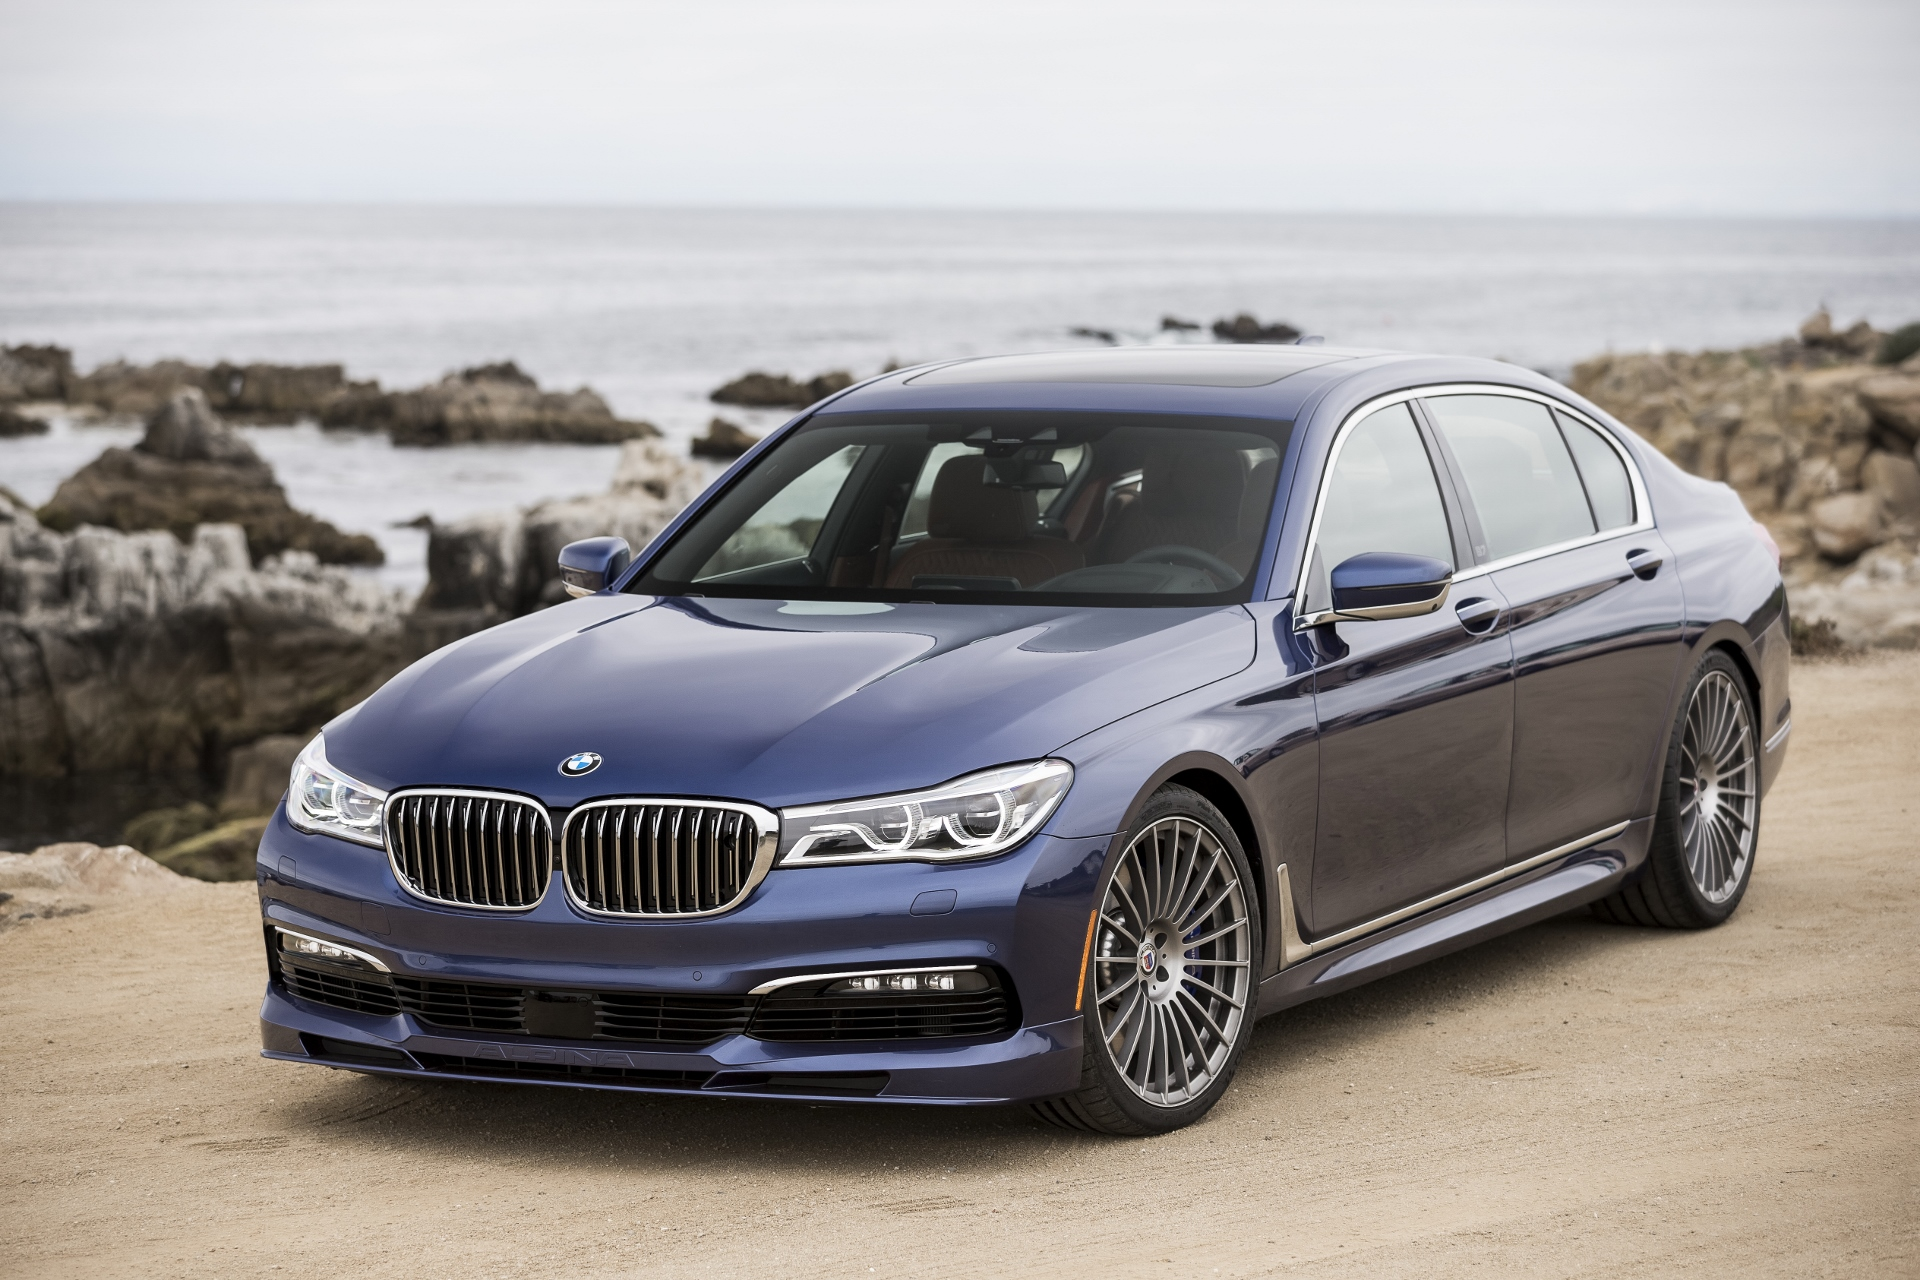 BMW Alpina B First Drive Review A Better BMW - Bmw alpina 7 series